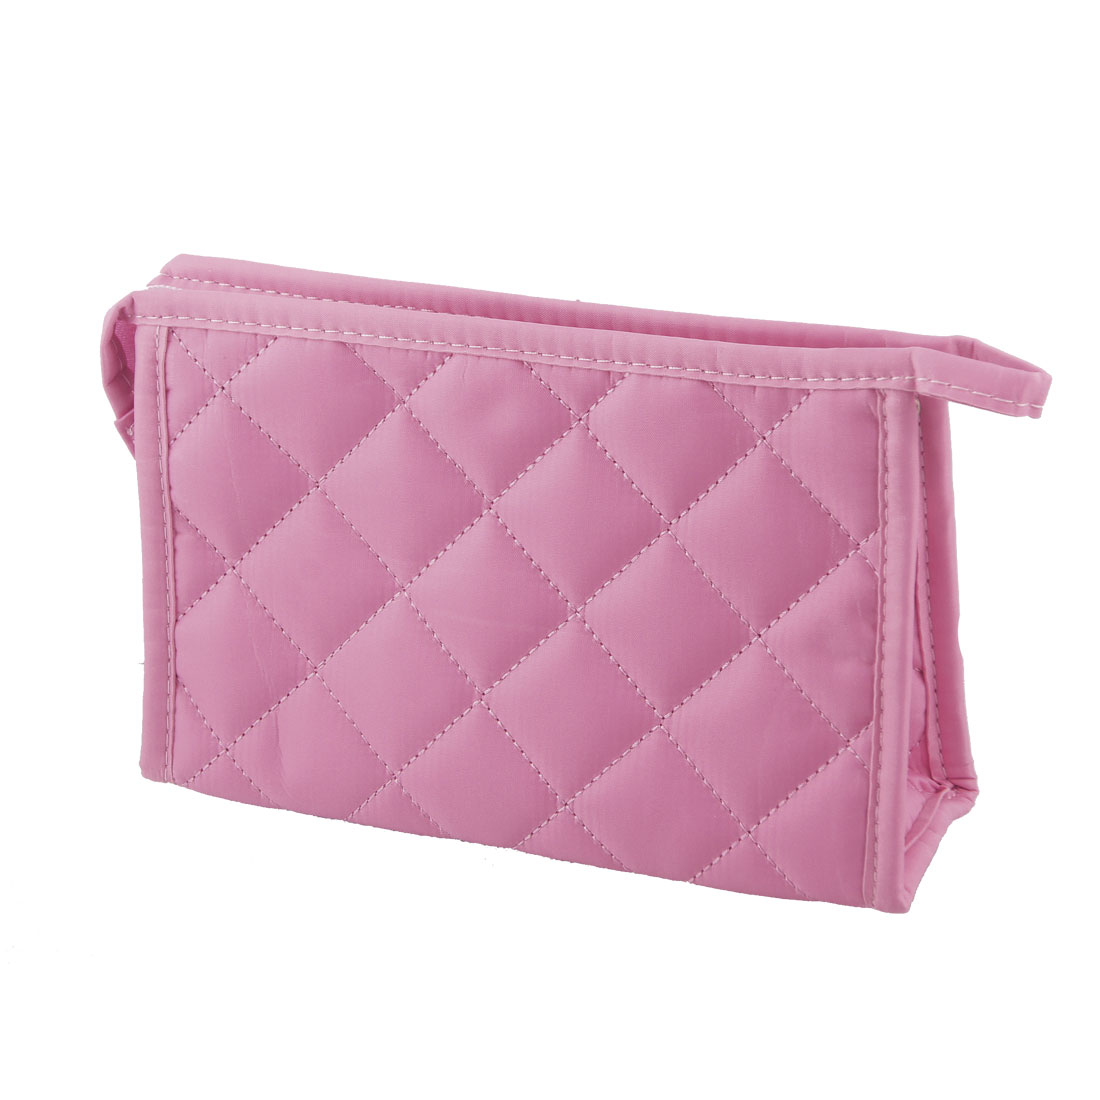 "7.5"" Long Grid Pattern Rectangle Shape Makeup Zipper Bag Pink for Ladies"